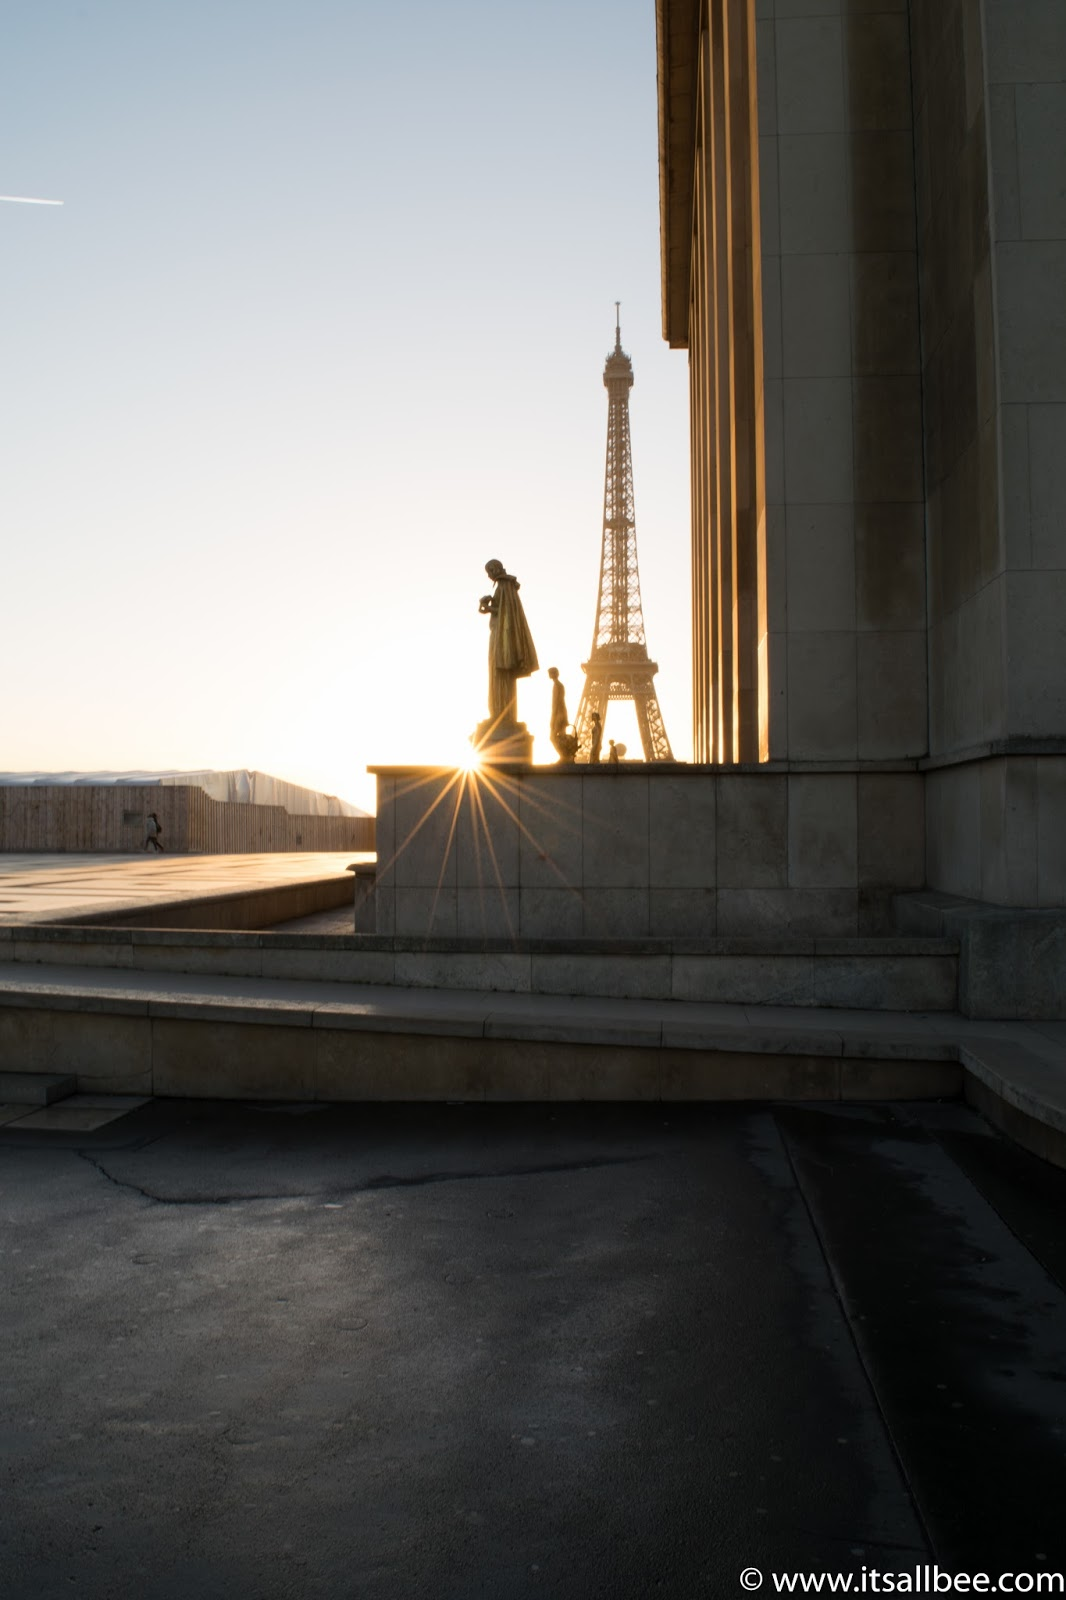 Sunrise at Trocadero Paris. Photo by Bianca www.itsallbee.com